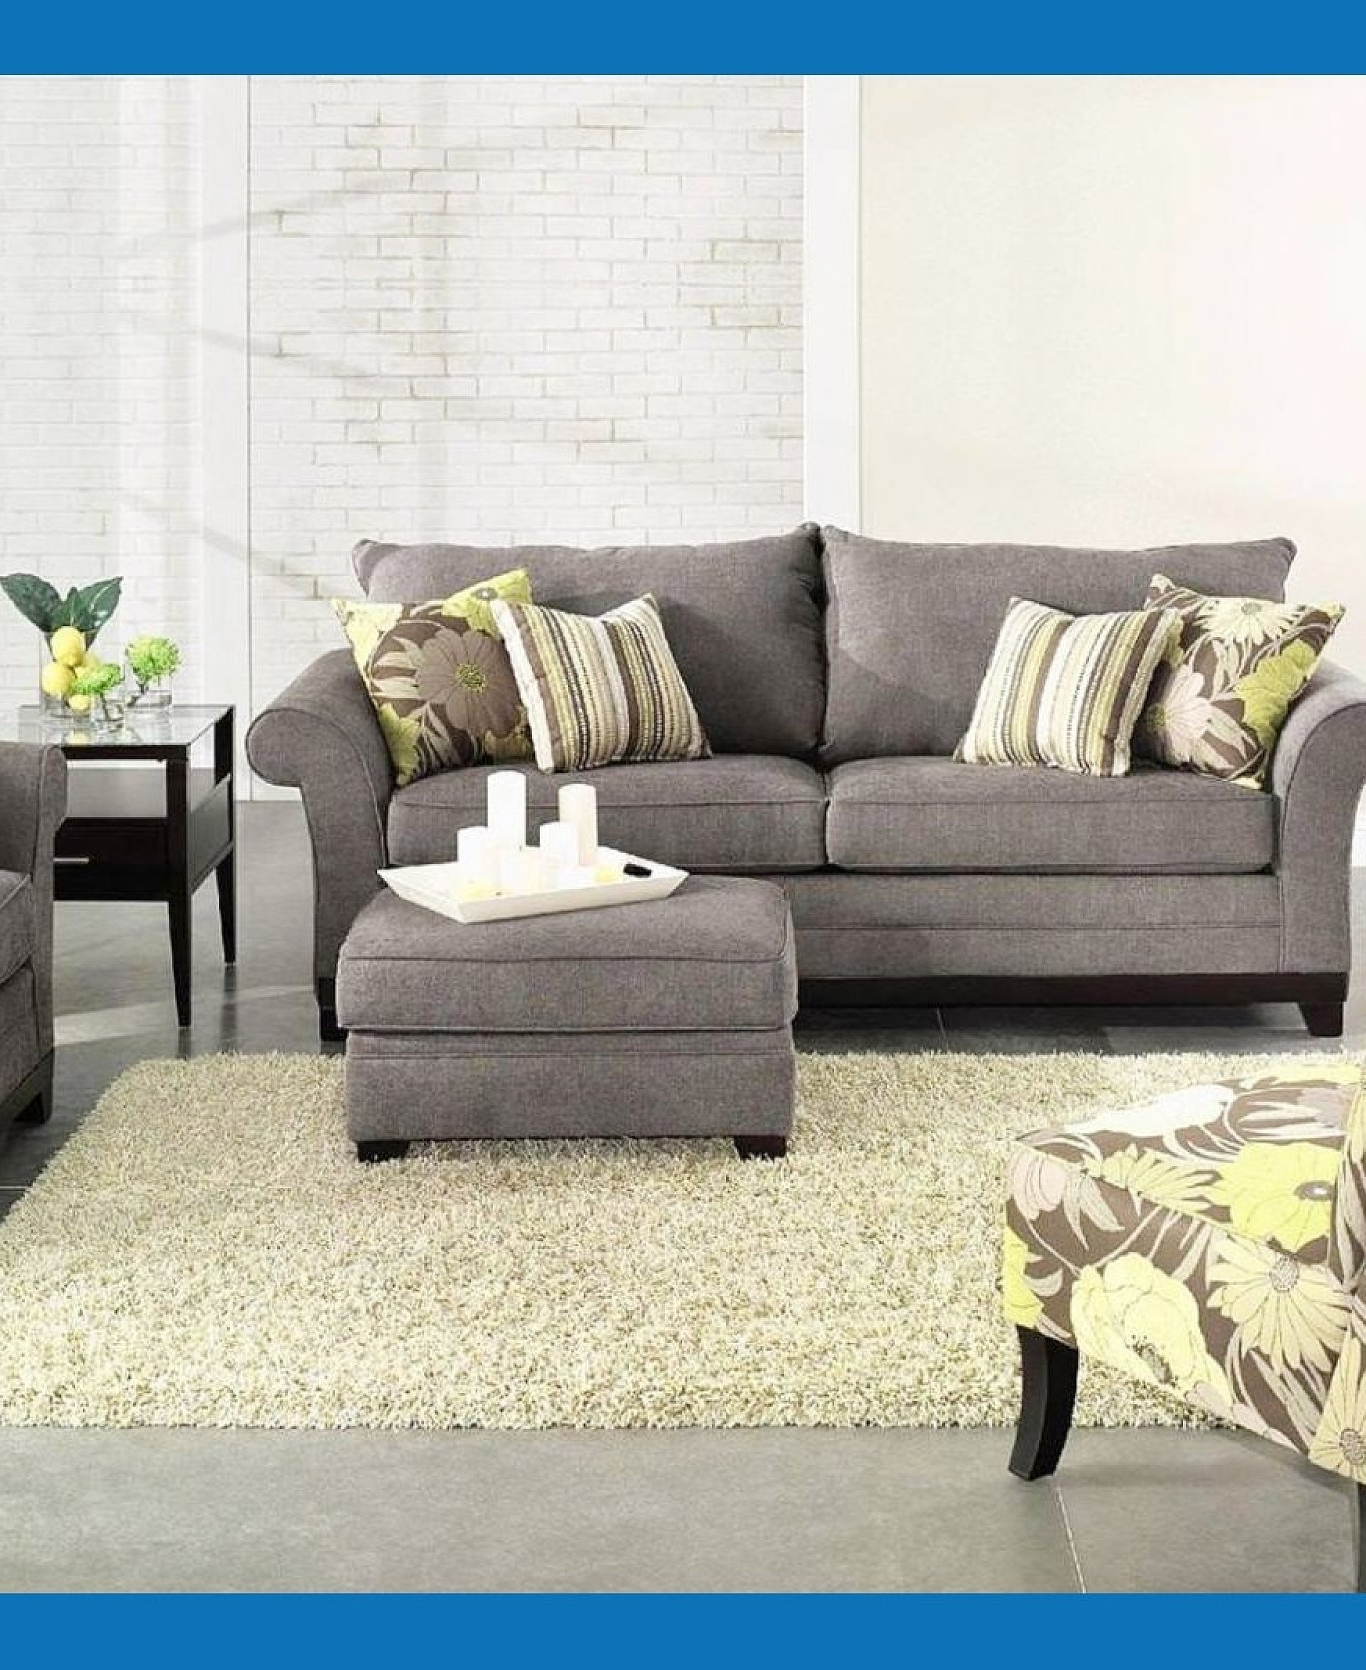 Farmers Furniture Sectional Sofas With Regard To Most Current Vino Reclining Sofa Badcock Hamilton Badcock Amarillo Trifecta (View 8 of 15)